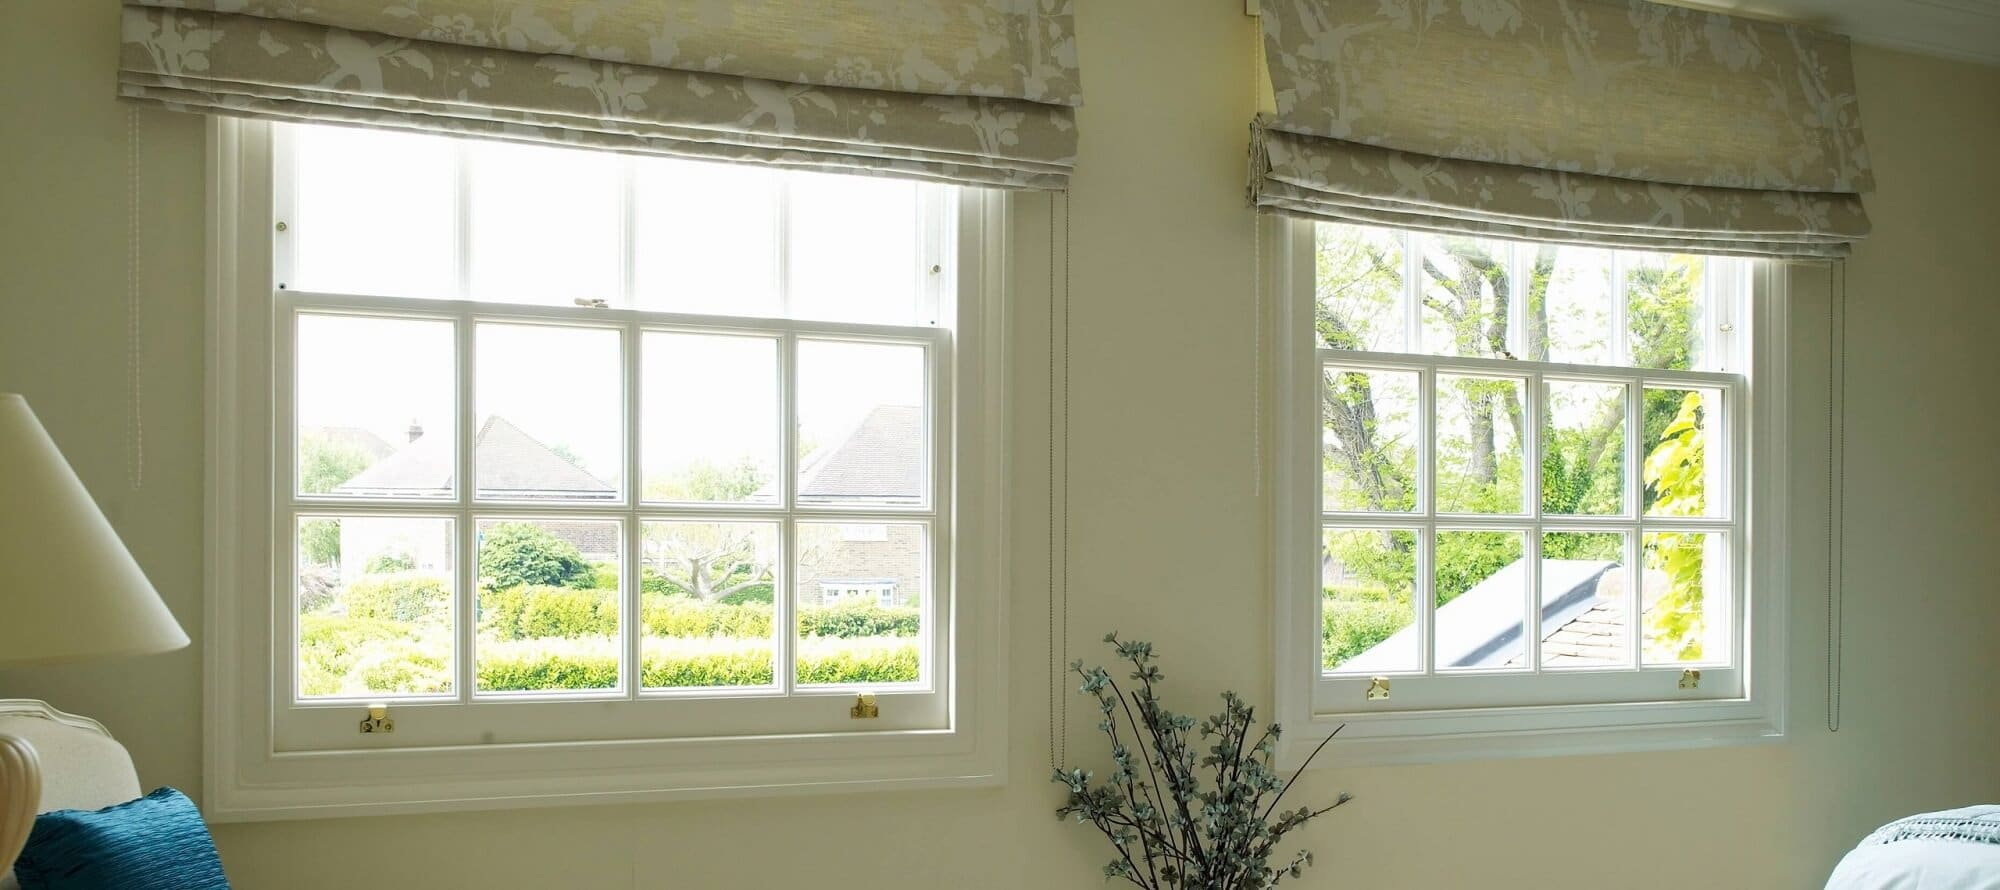 Traditional replacement sash windows